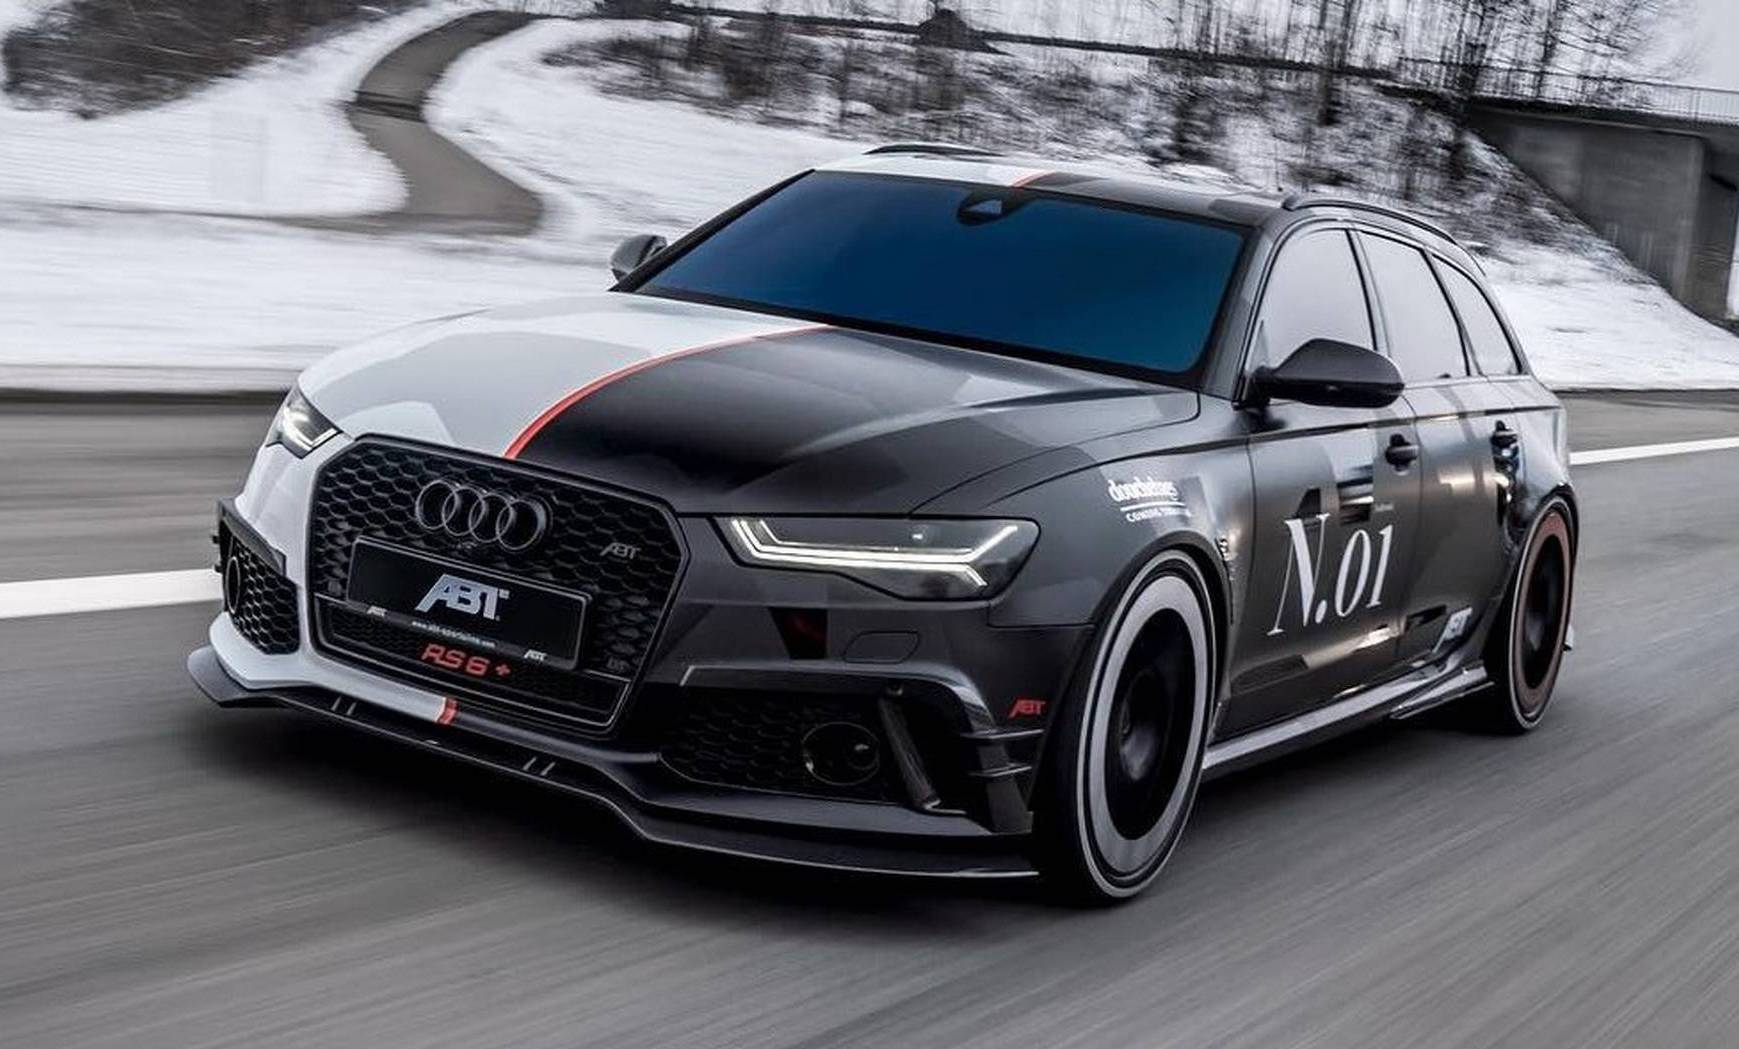 abt develops bonkers audi rs 6 39 phoenix 39 for jon olsson performancedrive. Black Bedroom Furniture Sets. Home Design Ideas